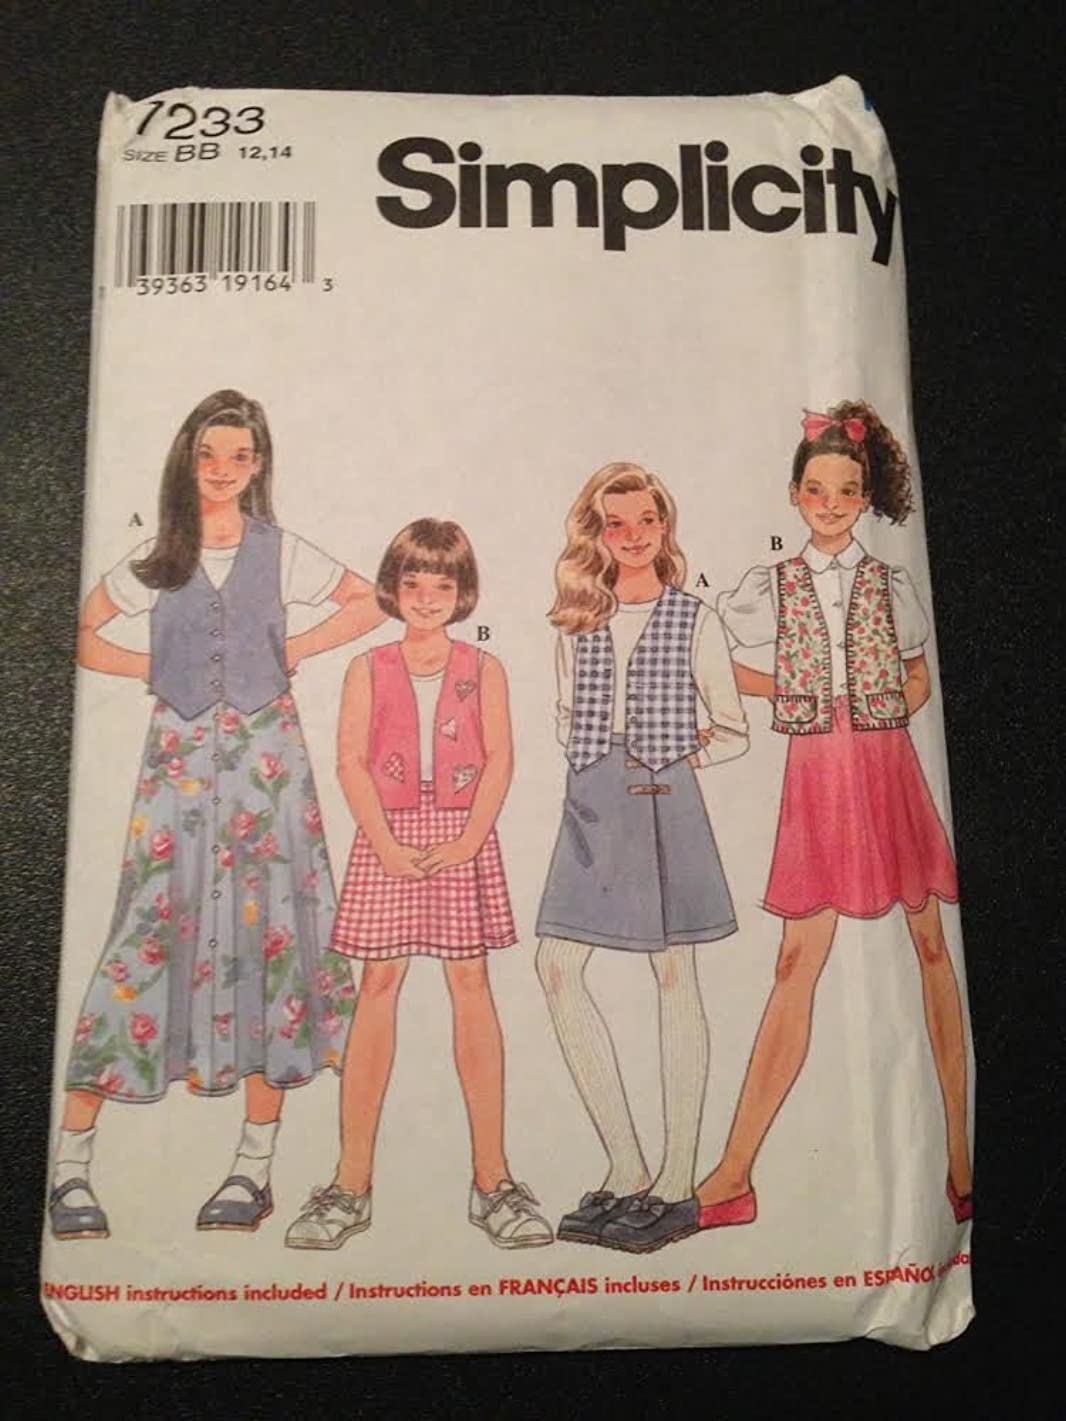 Simplicity 7233 Sewing Pattern, Girls' Vests and Skirts, Size BB (12,14)